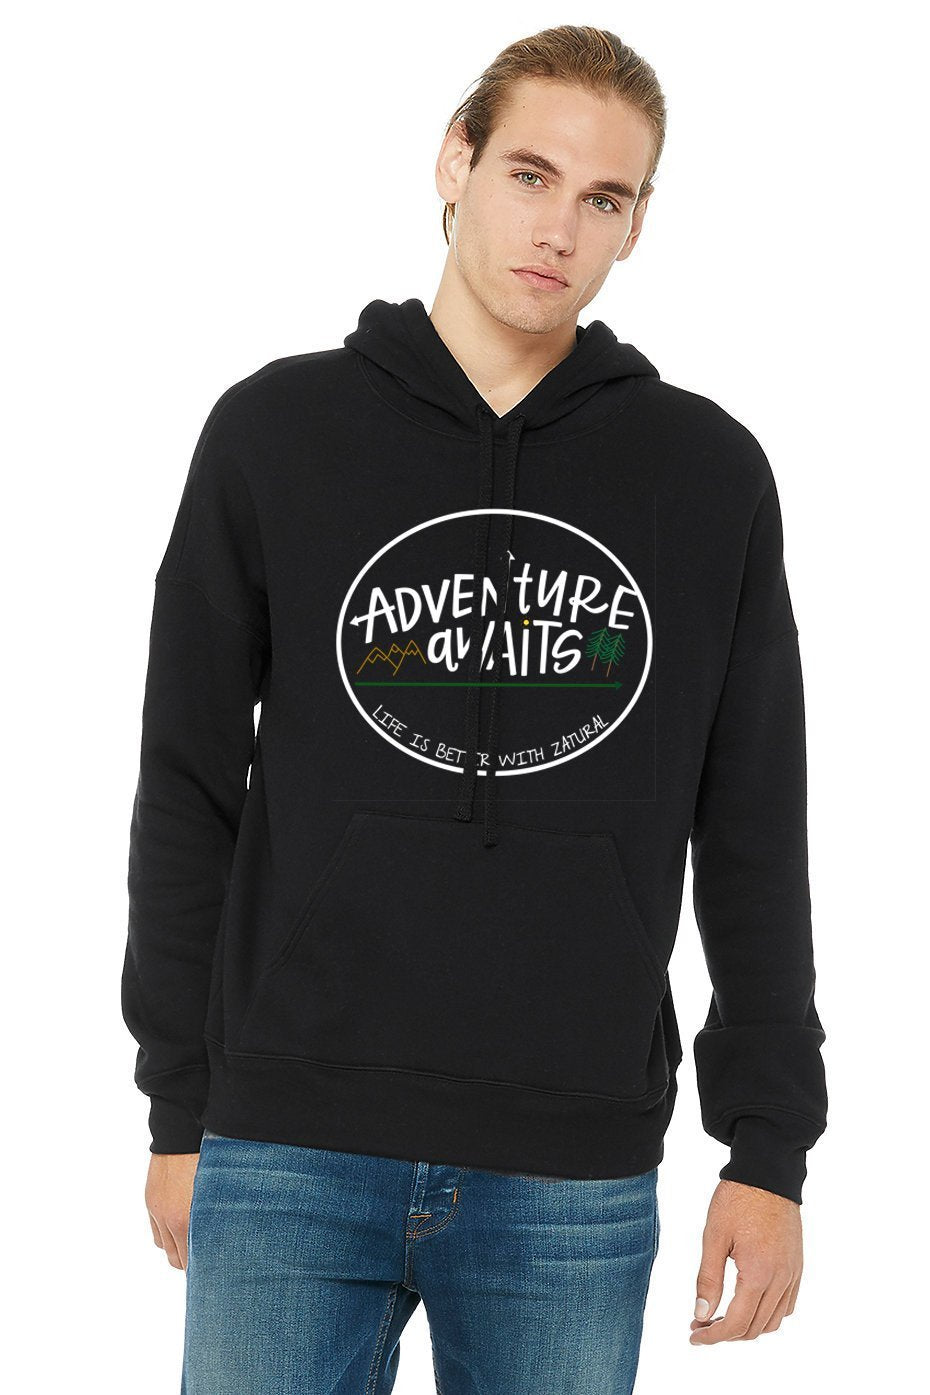 'Adventure Awaits' - Ultra-Soft Pullover SweatShirt